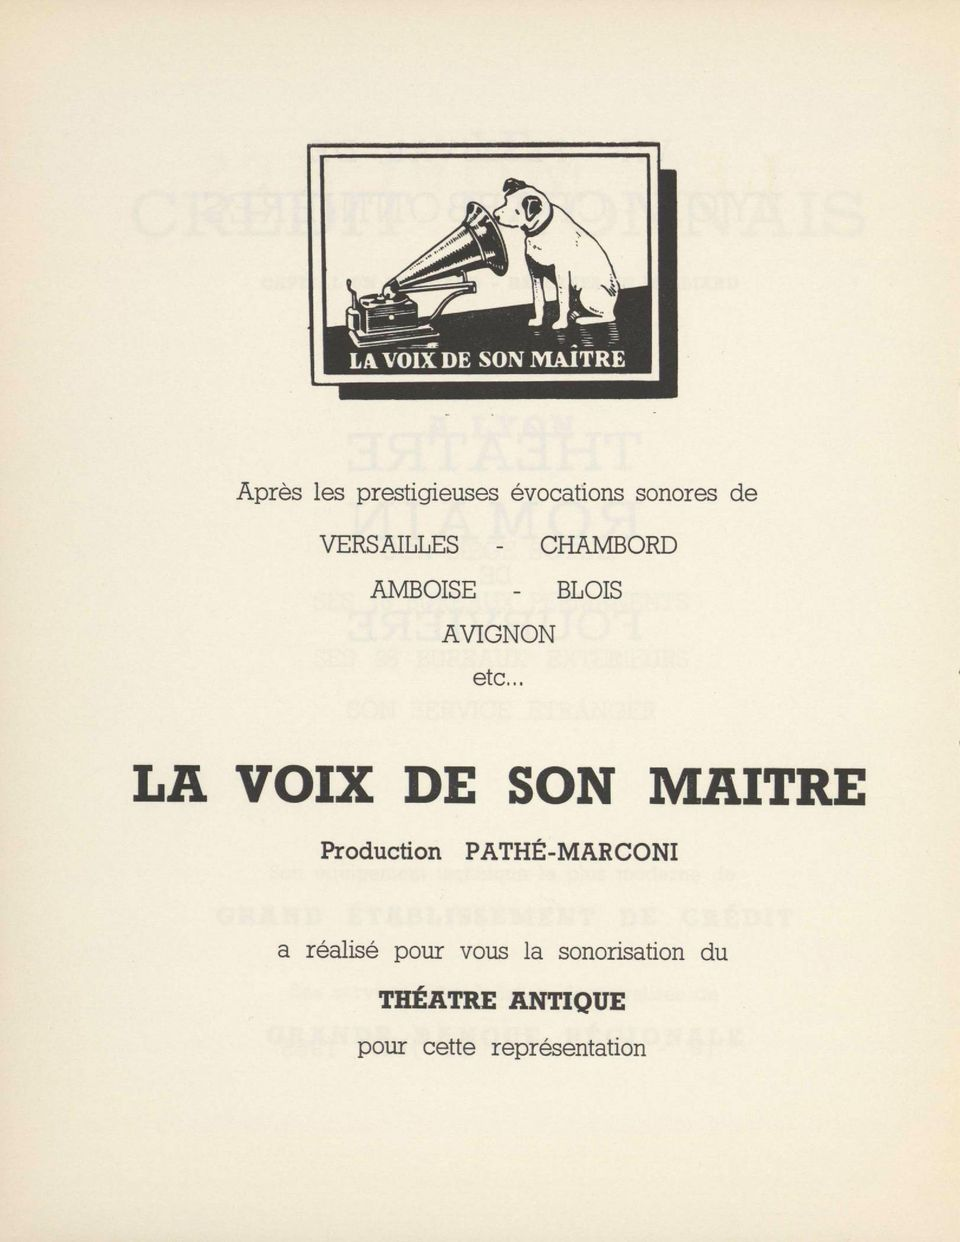 . LA VOIX DE SON MAITRE Production PATHÉ-MARCONI a